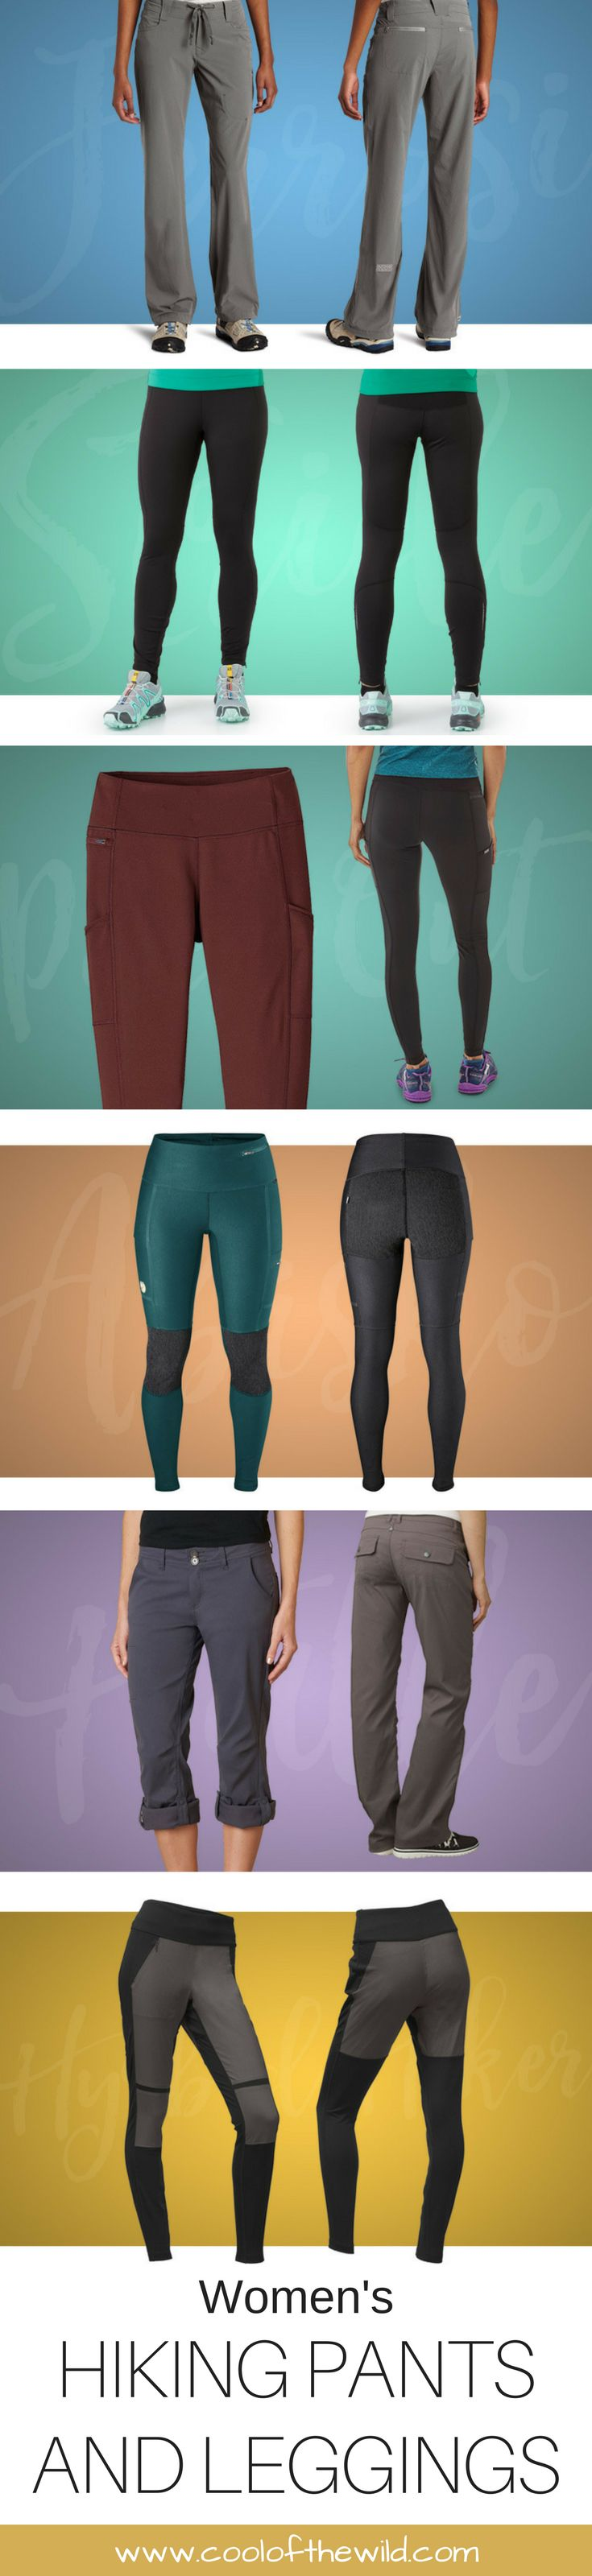 Wherever your adventures may take you, be sure to hike in comfort in a pair fitted hiking leggings or hip hanging pants!